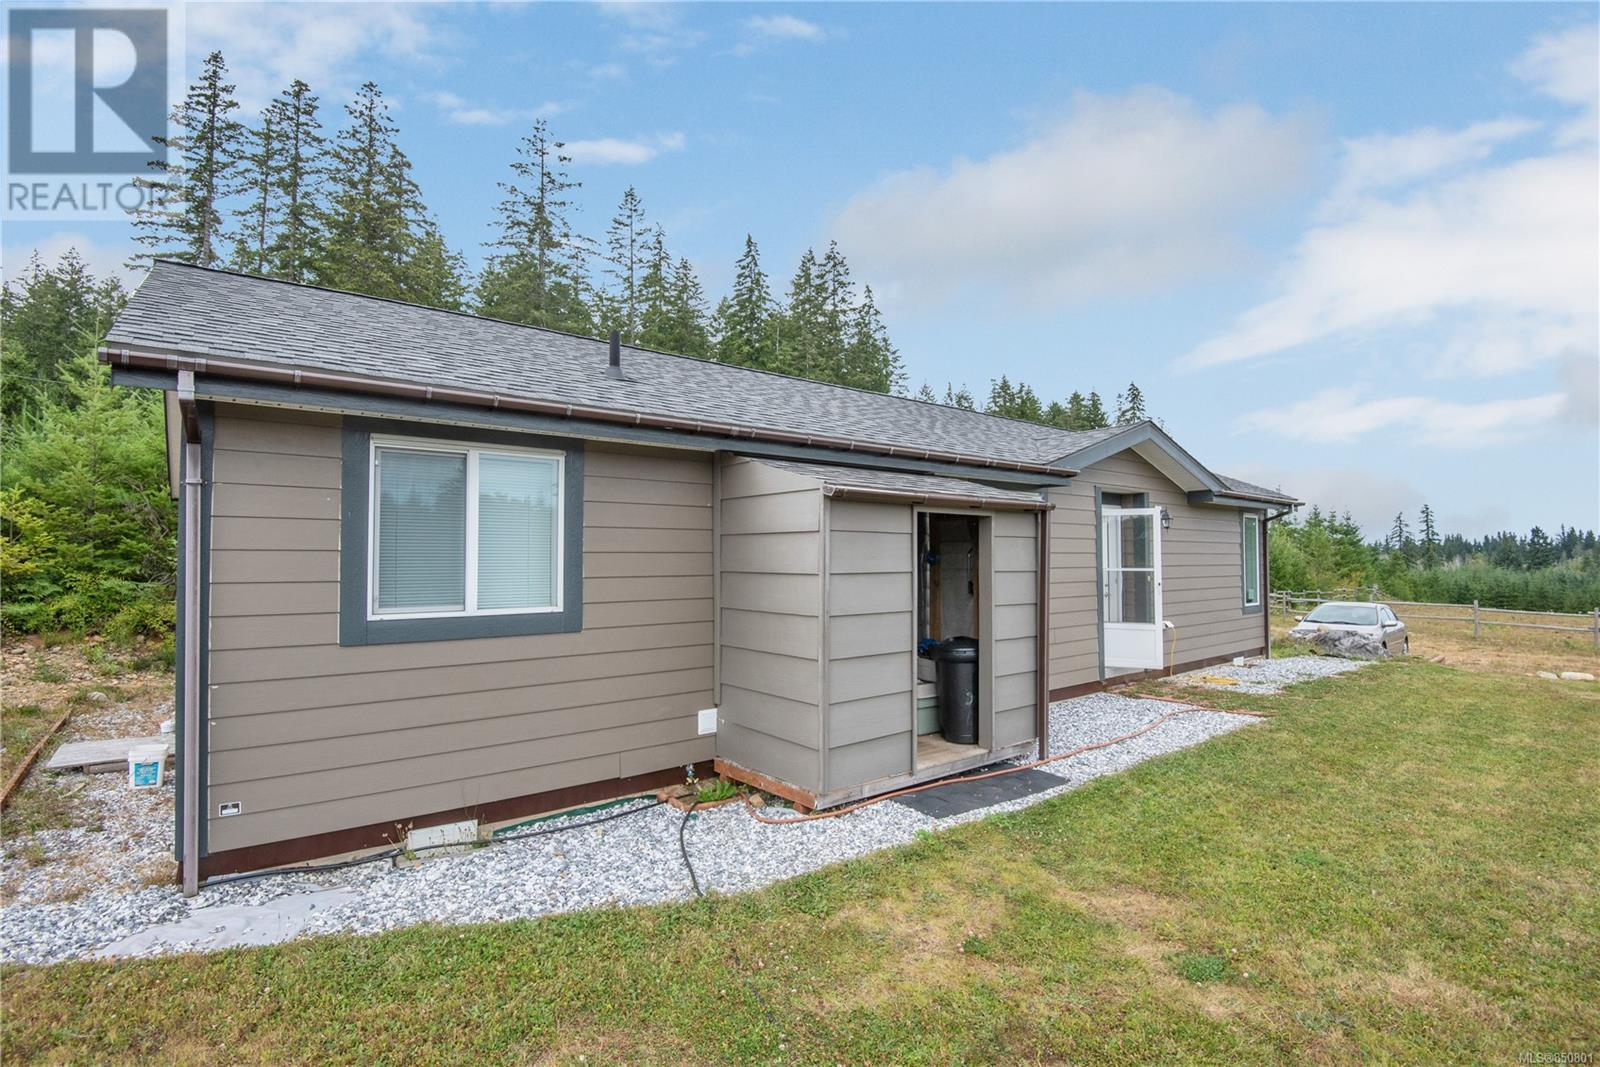 MLS® #850801 - Campbell River House For sale Image #59